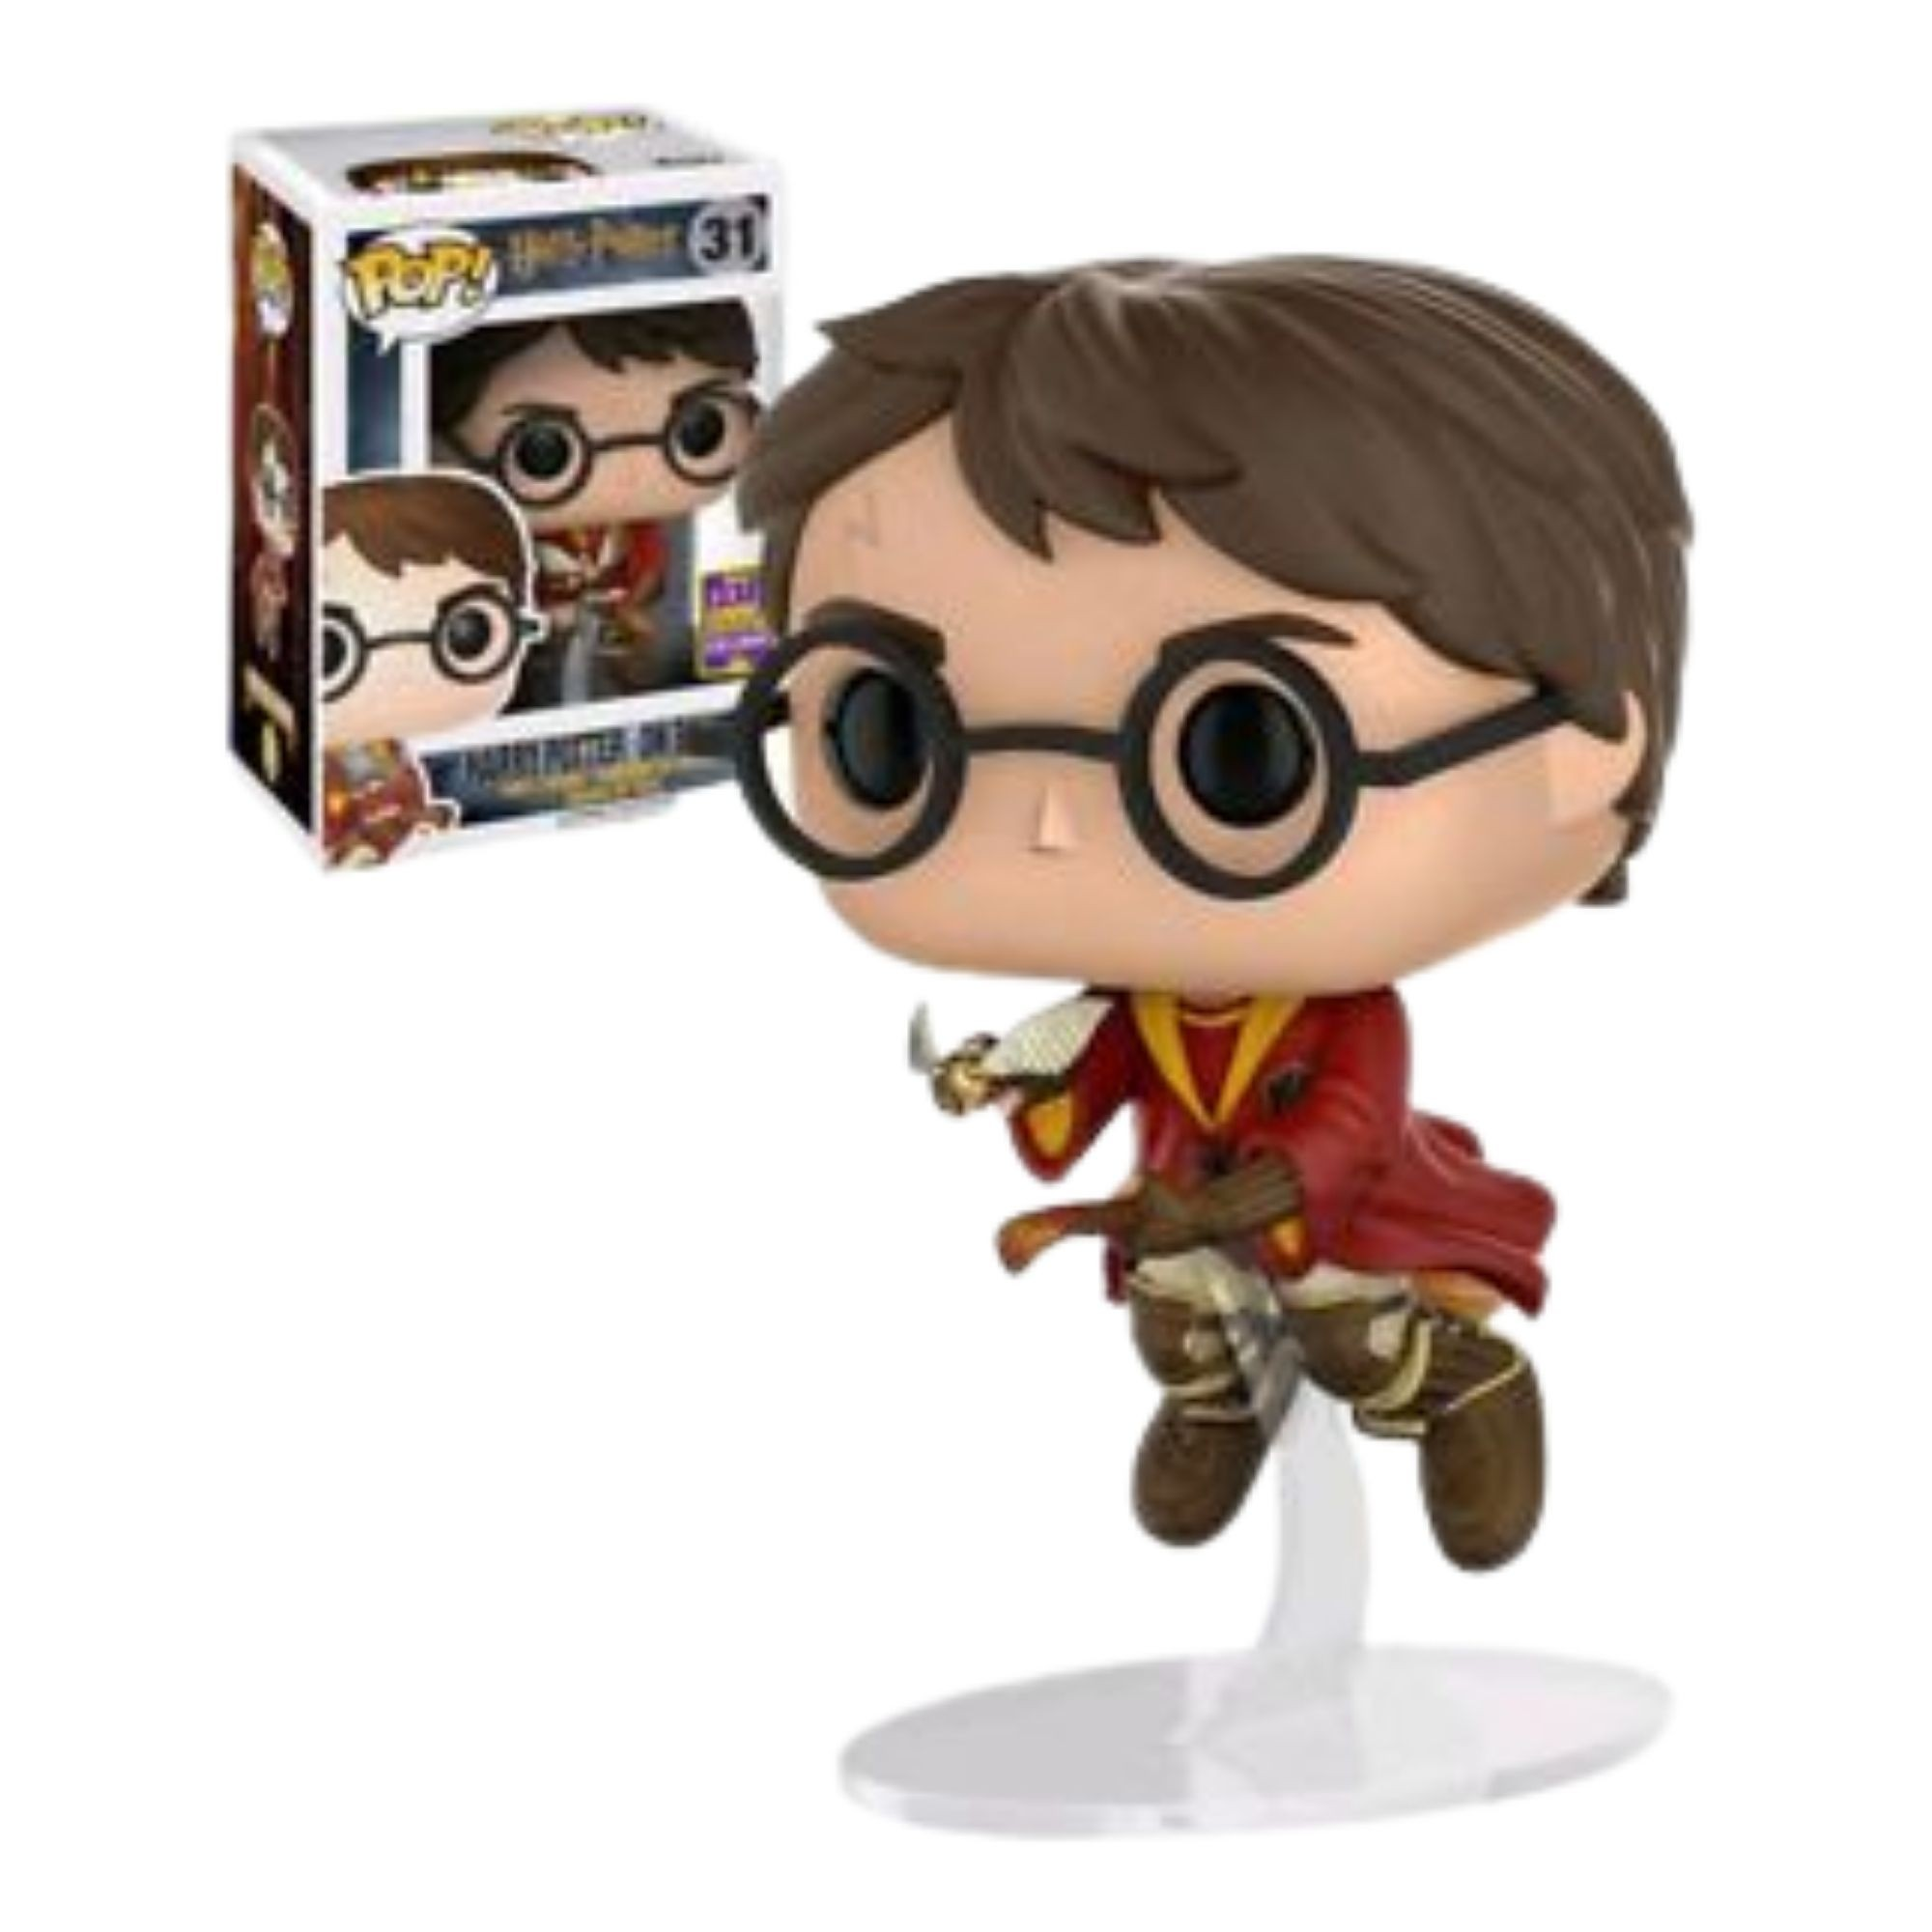 Funko Pop Harry Potter on Broom #31 Sdcc 2017  - Game Land Brinquedos